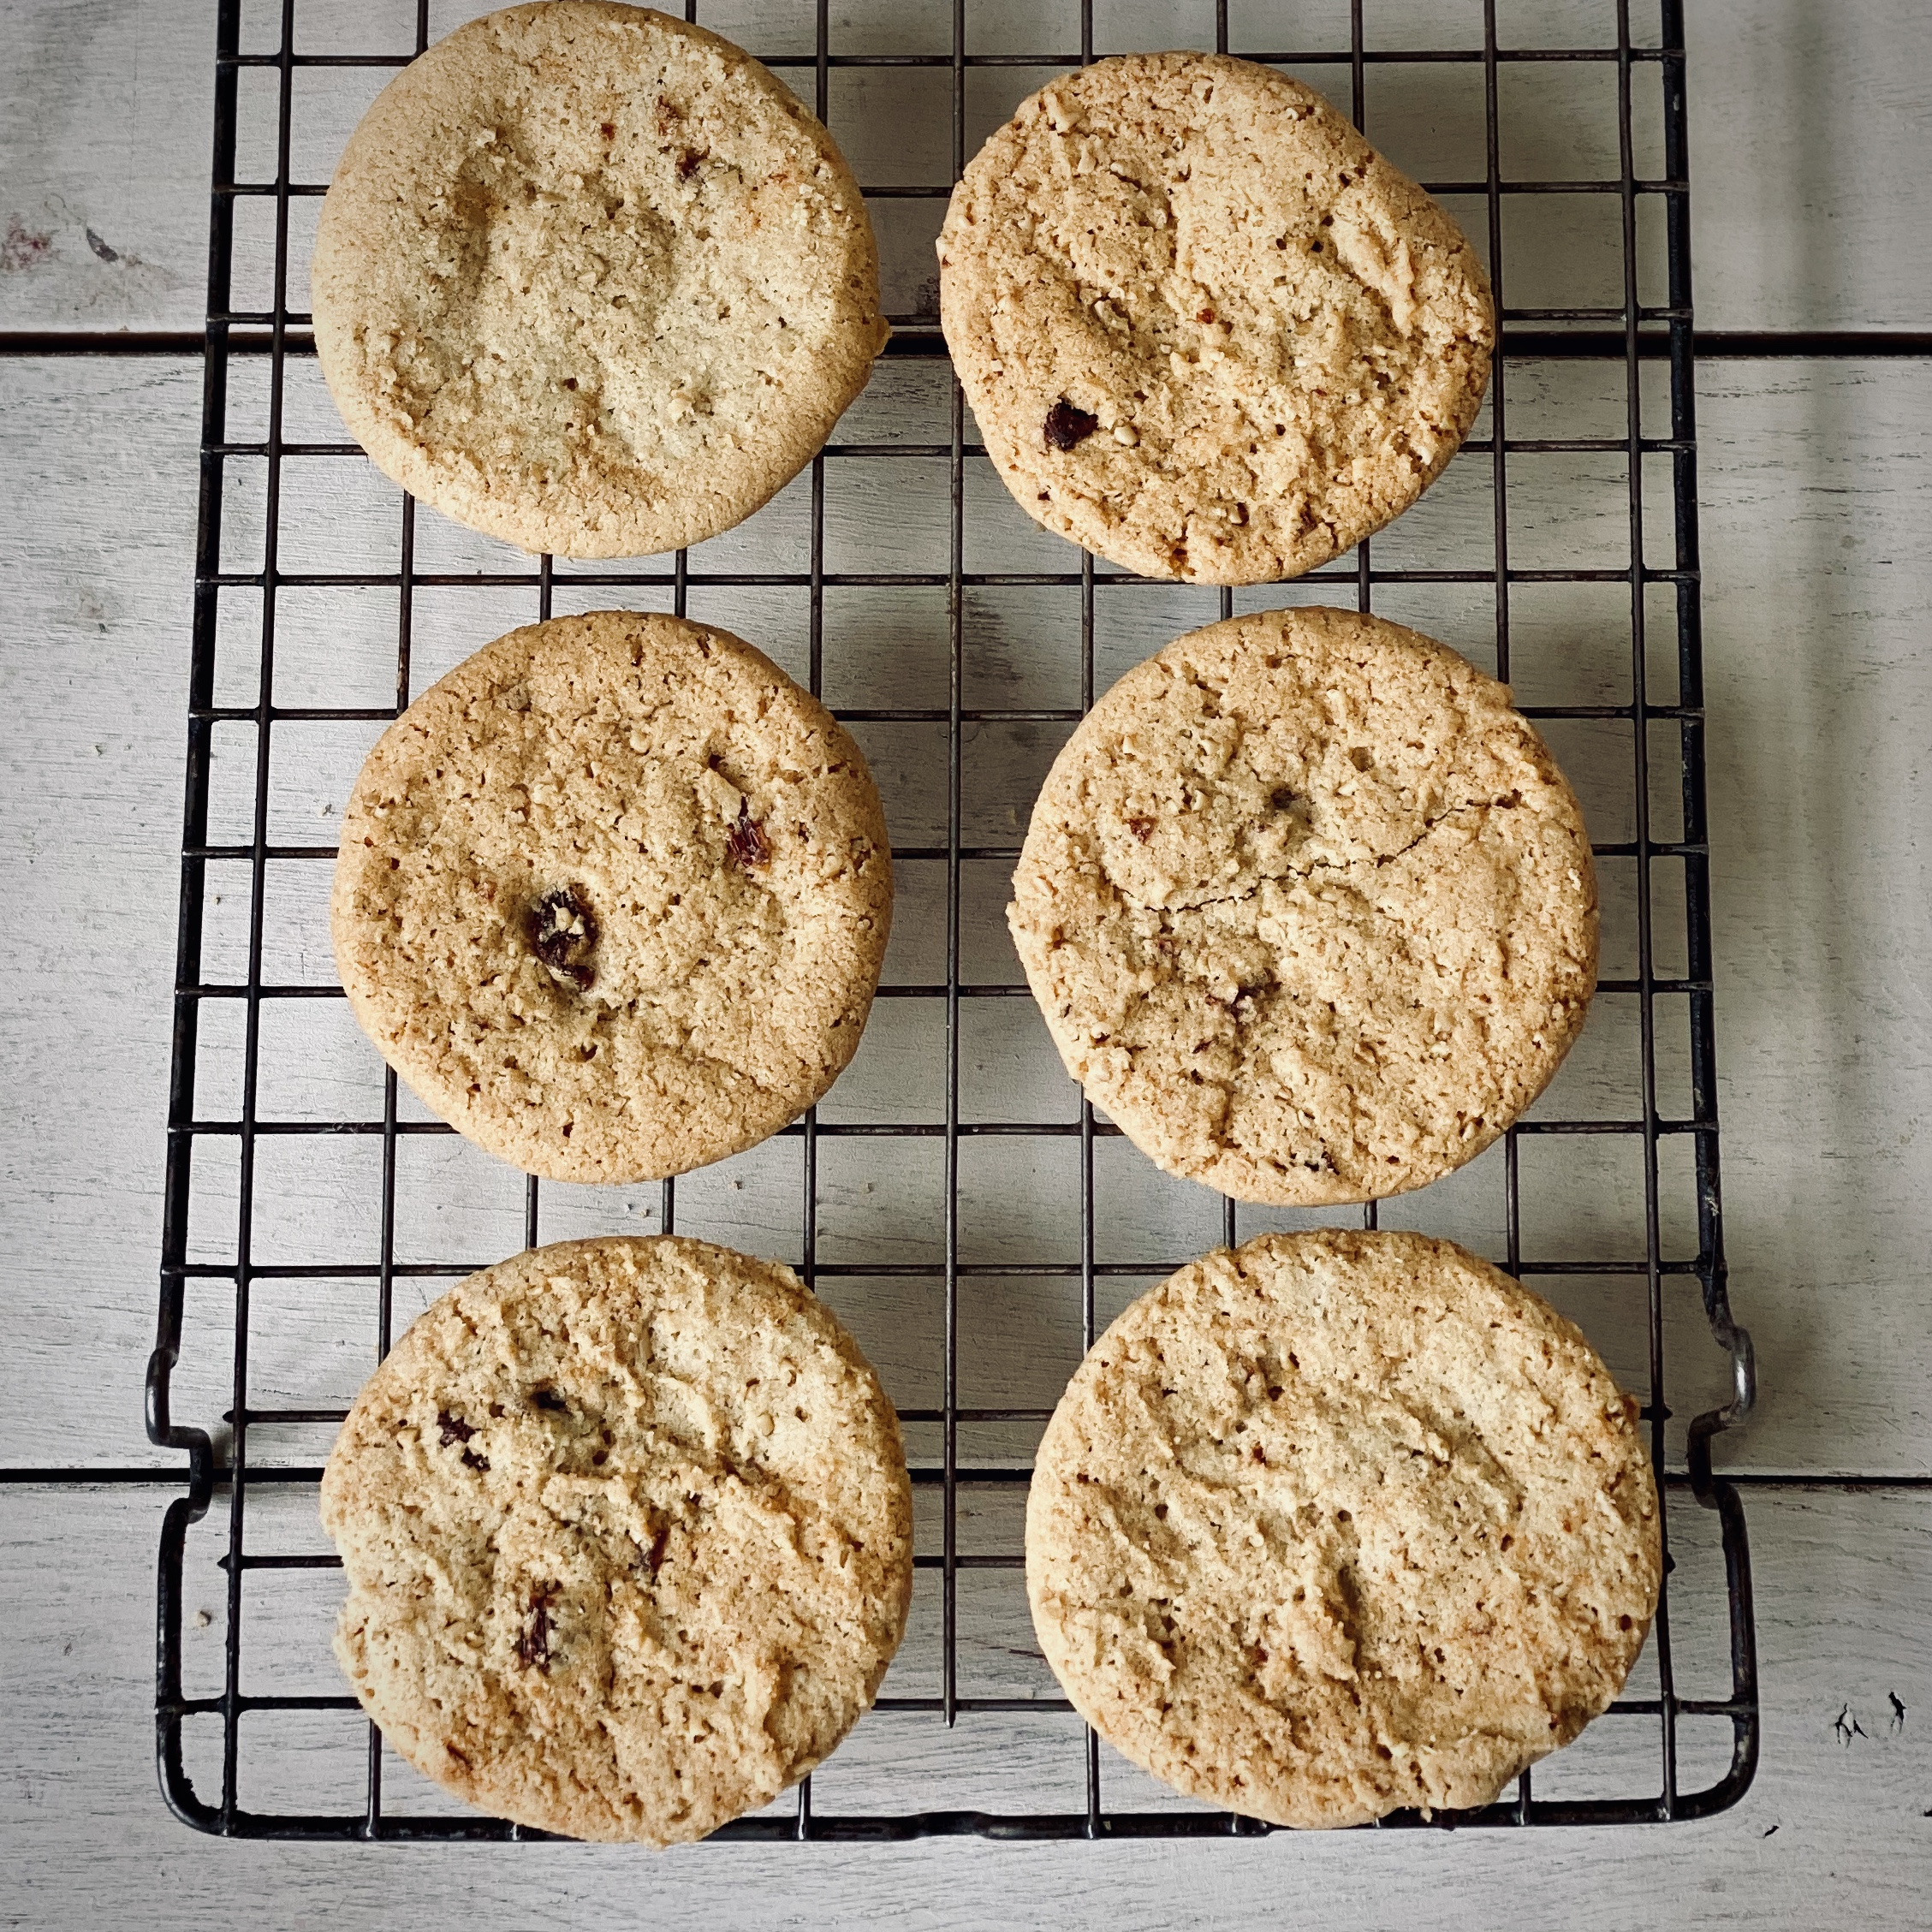 Lottie Shaw's Heritage Oatmeal & Raisin Biscuits